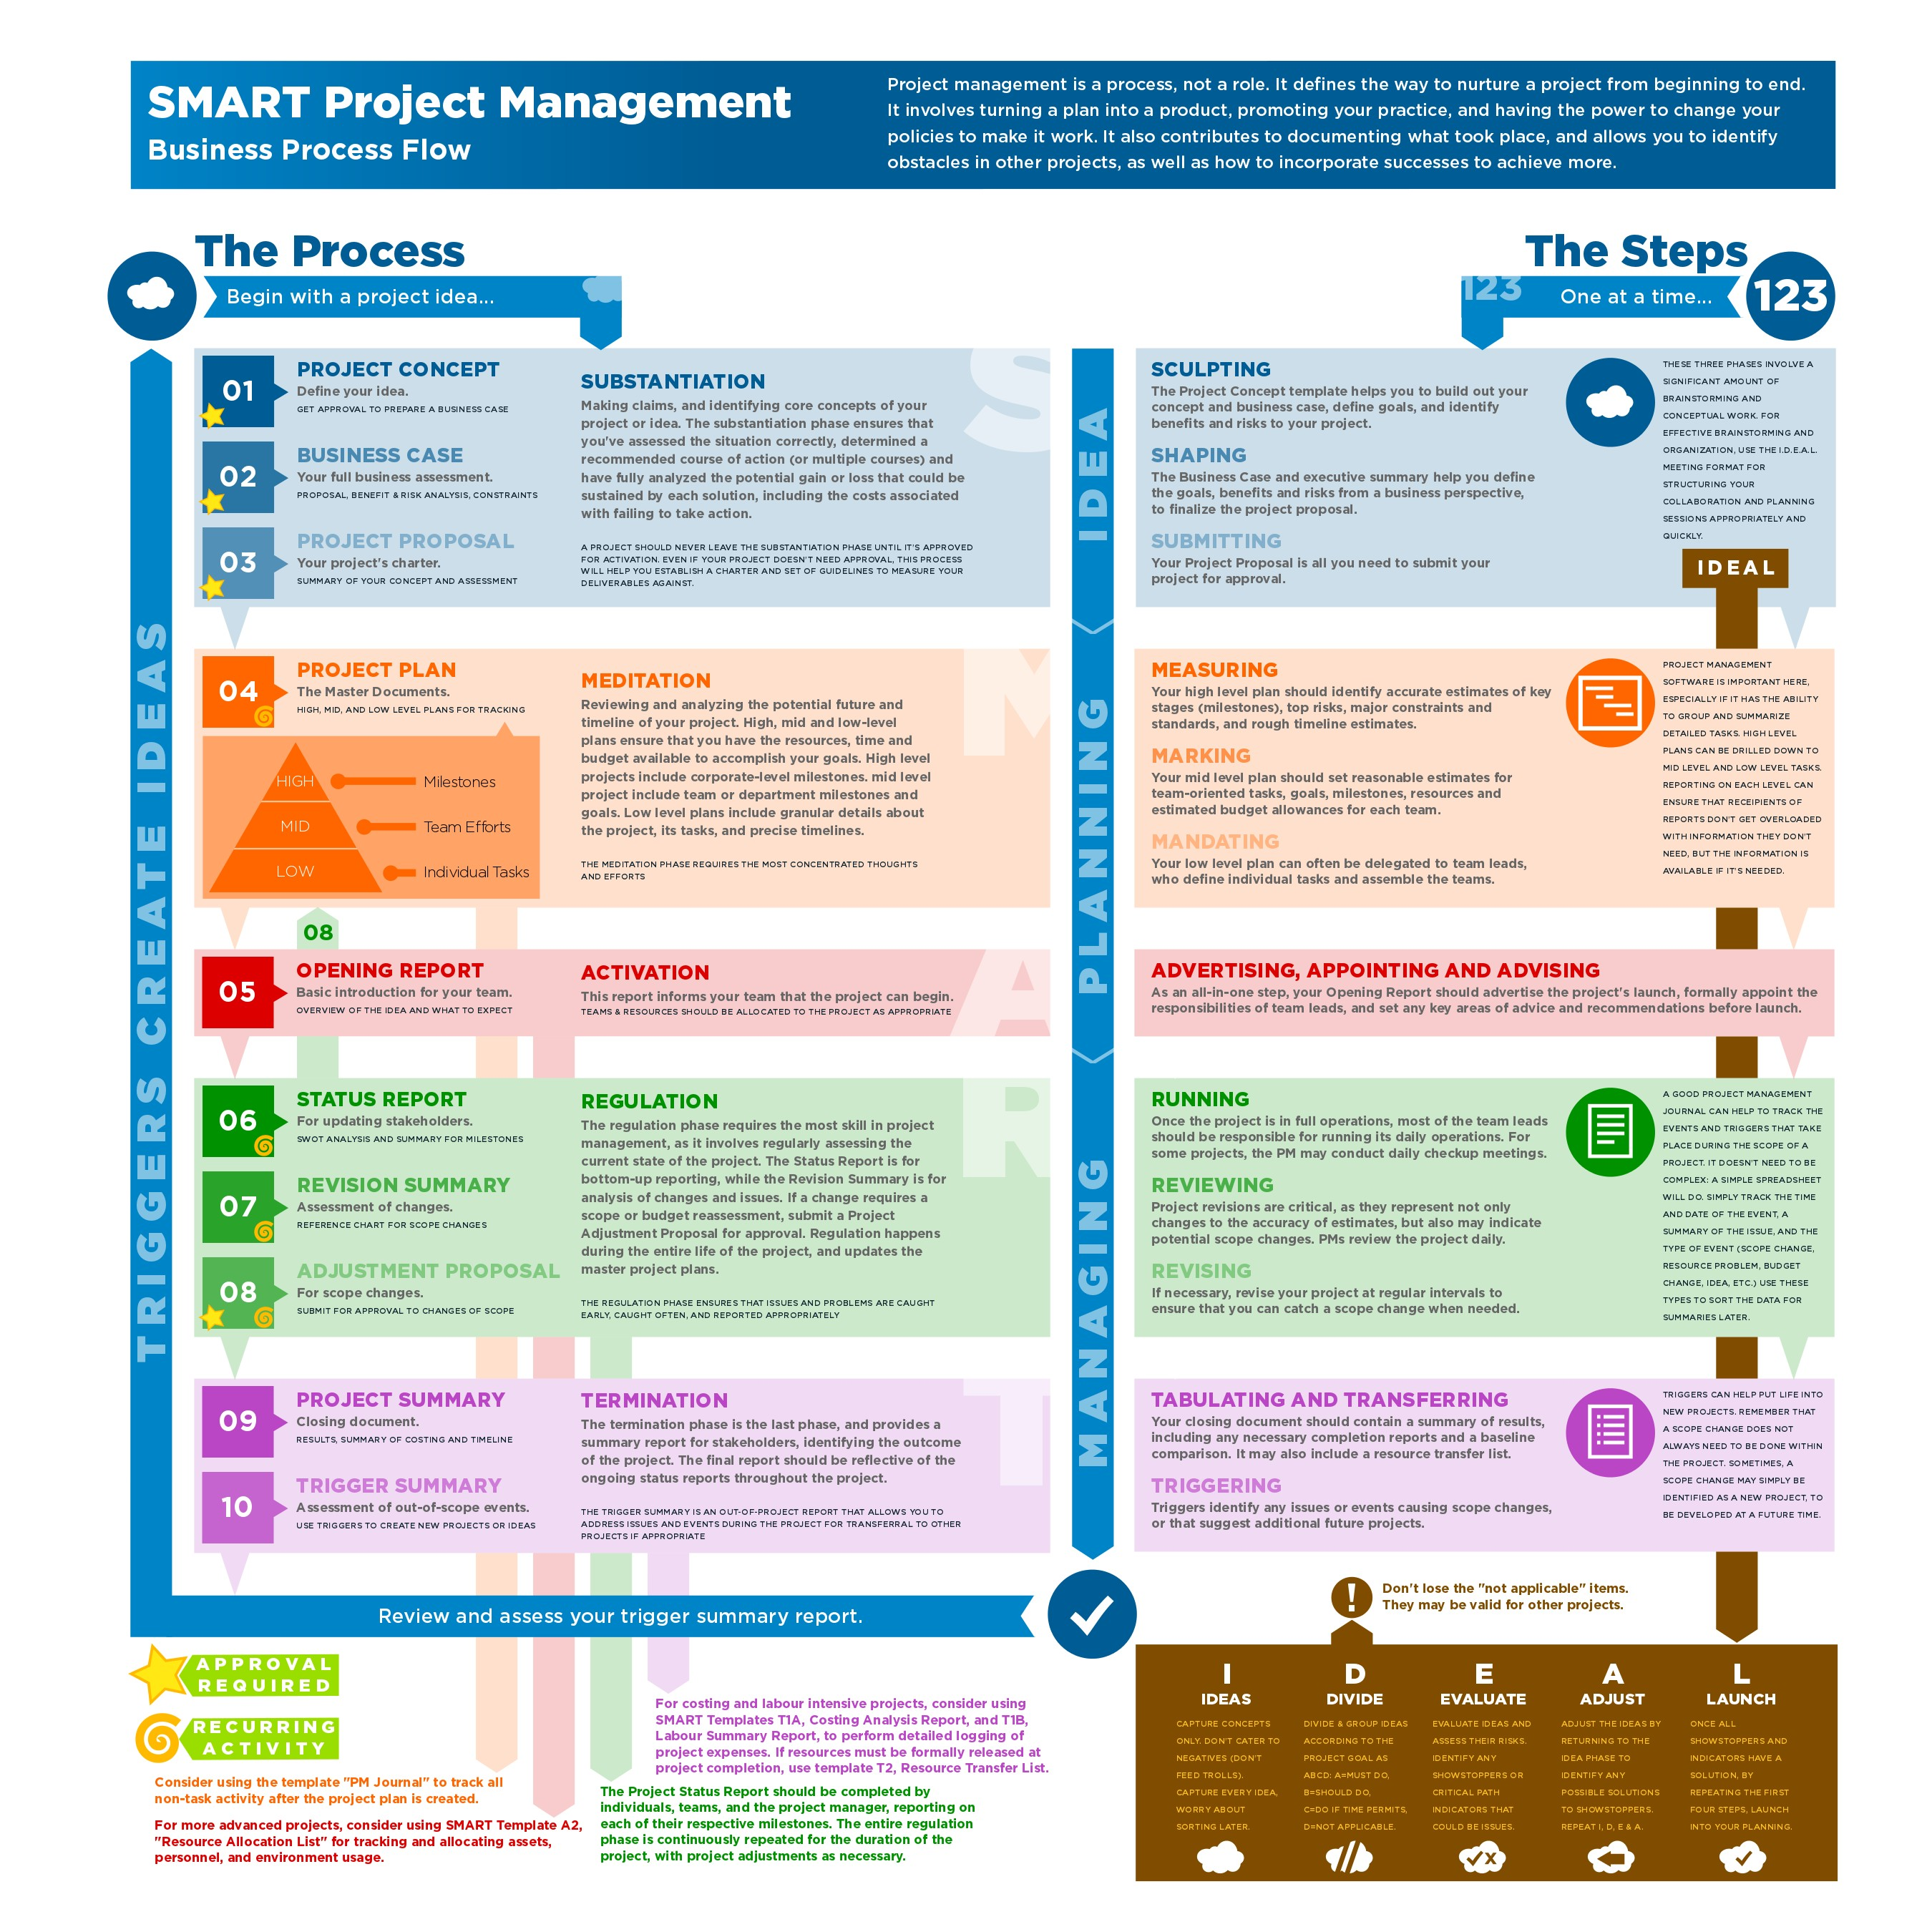 Project Management: SMART Project Management [Infographic]